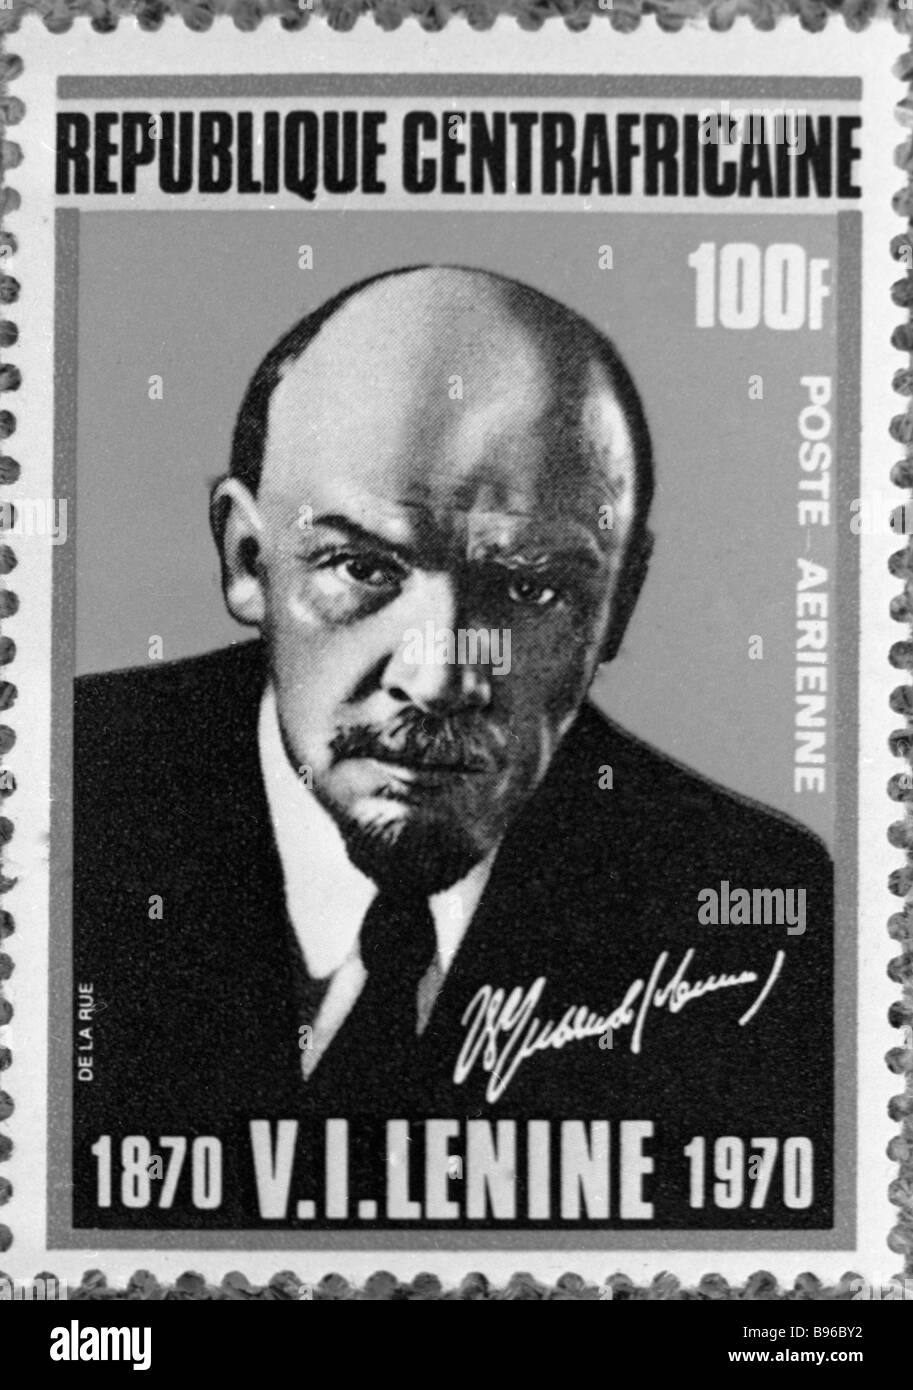 The Central African Republic issued this postal stamp to commemorate Lenin s birth centenary - Stock Image